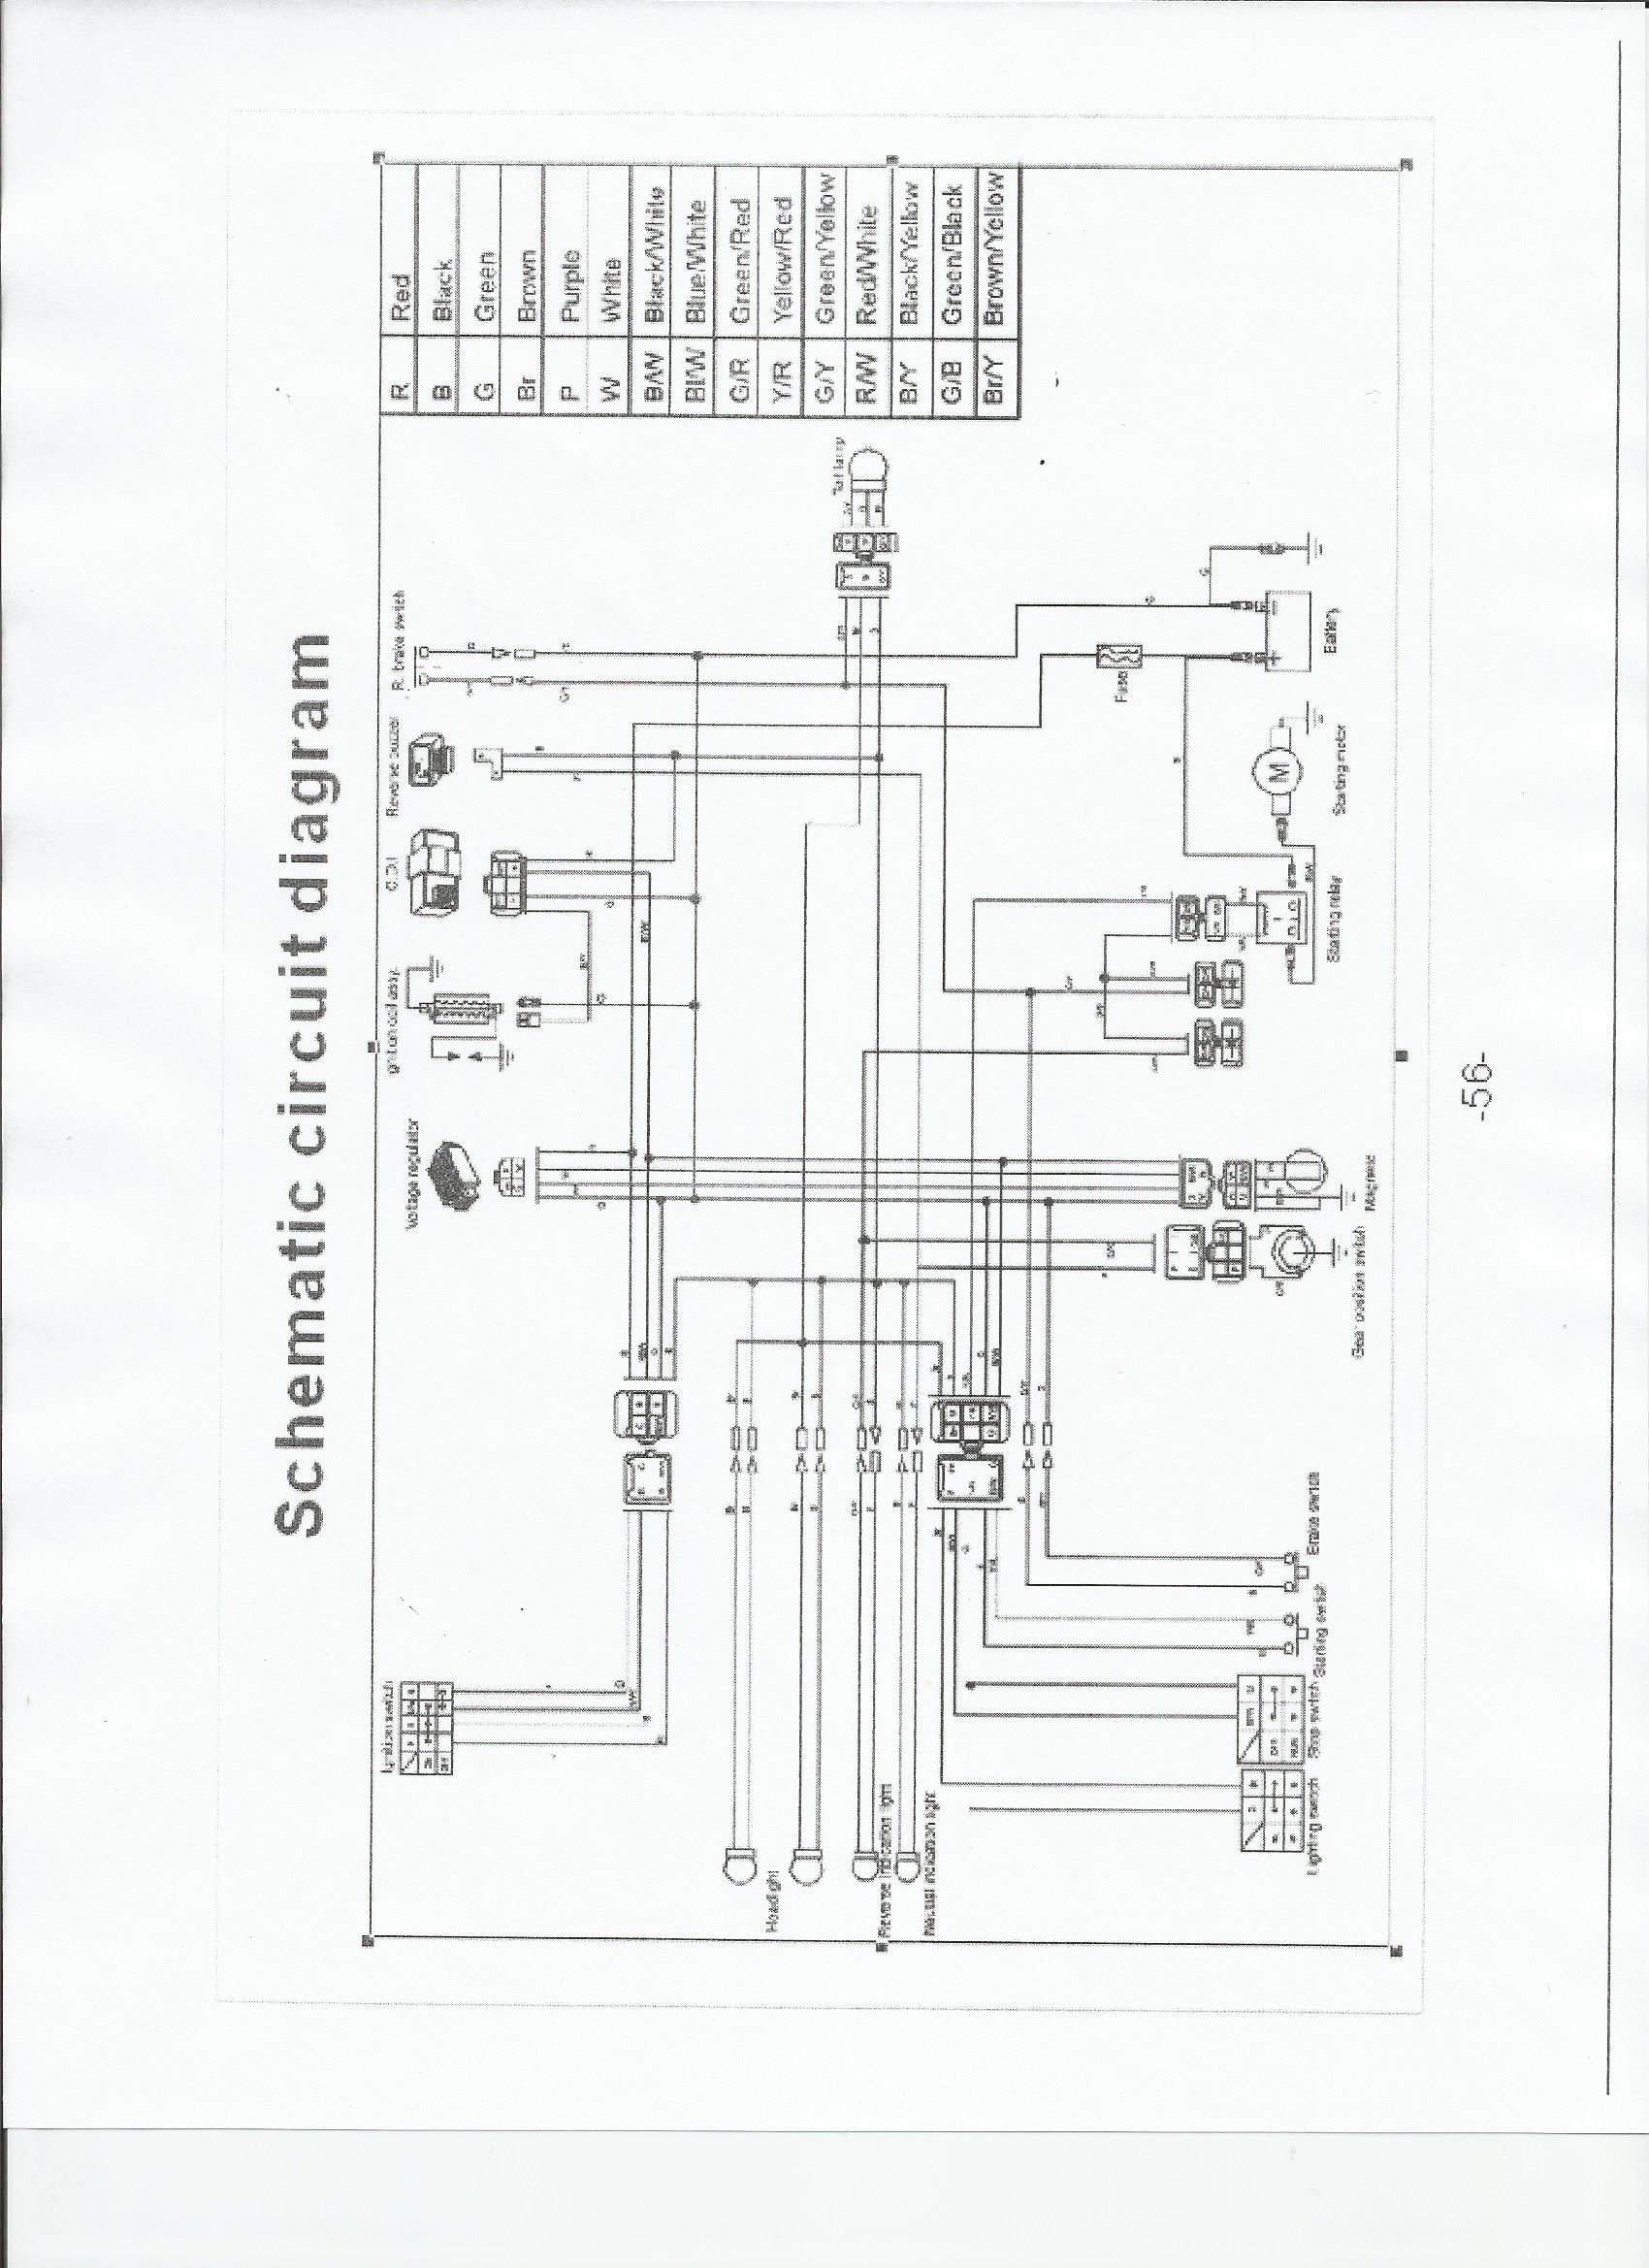 tao tao wiring schematic s support familygokarts com hc en us article red bull mini fridge wiring diagram at n-0.co